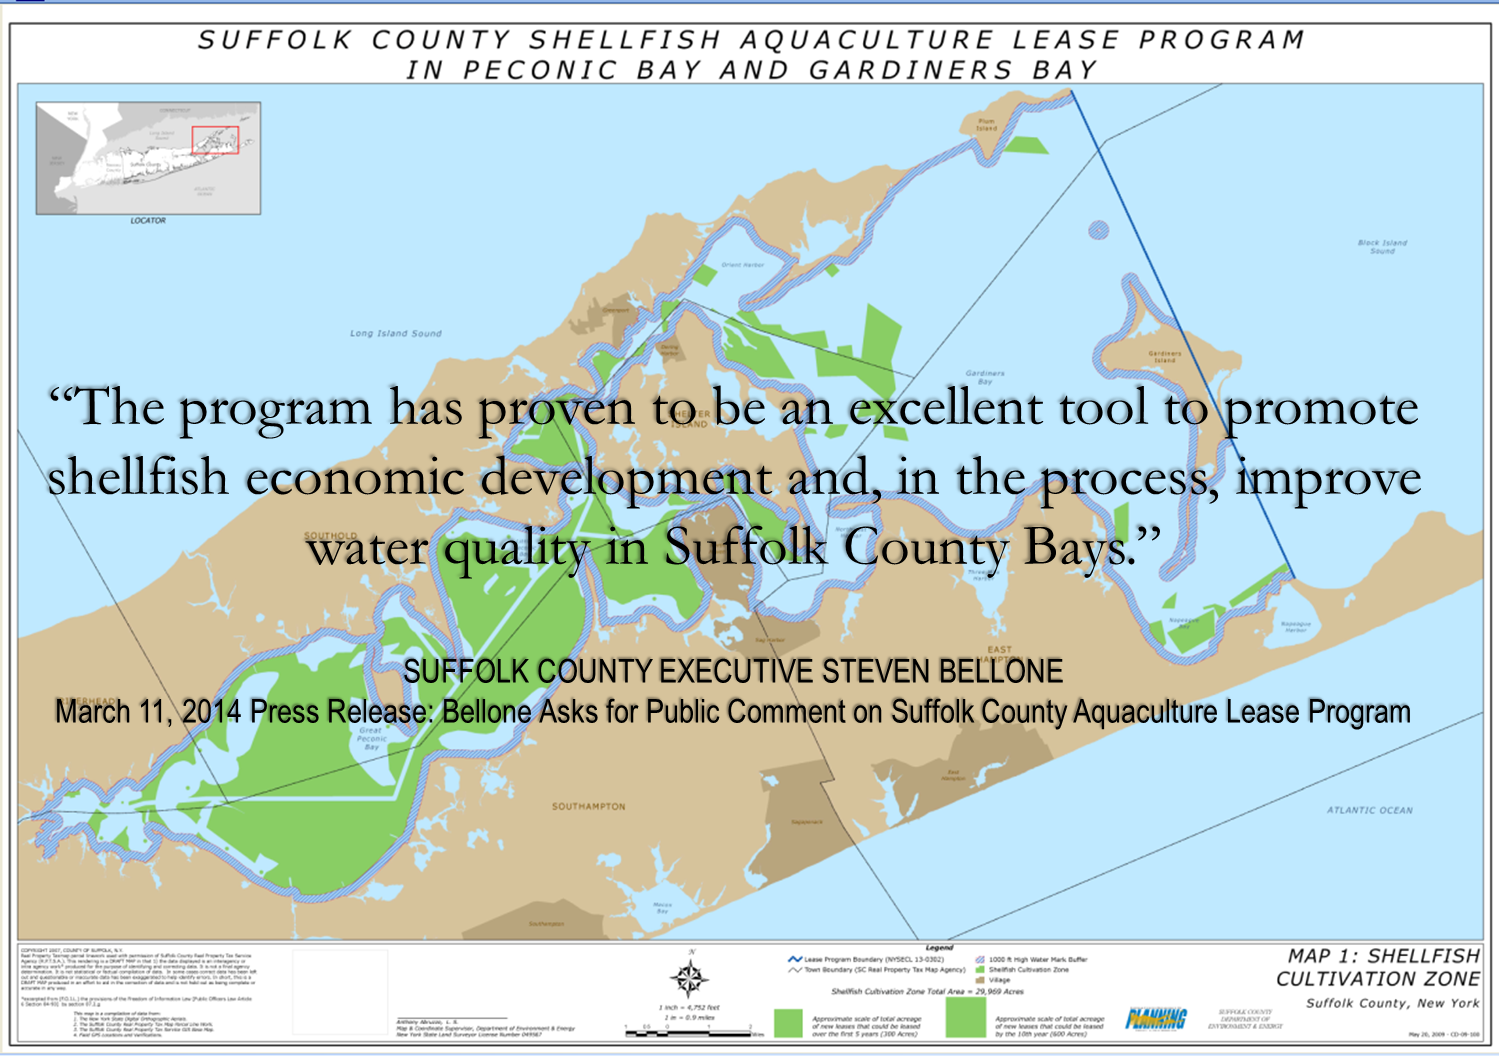 Picture of Suffolk County Shellfish Aquacluture lease program